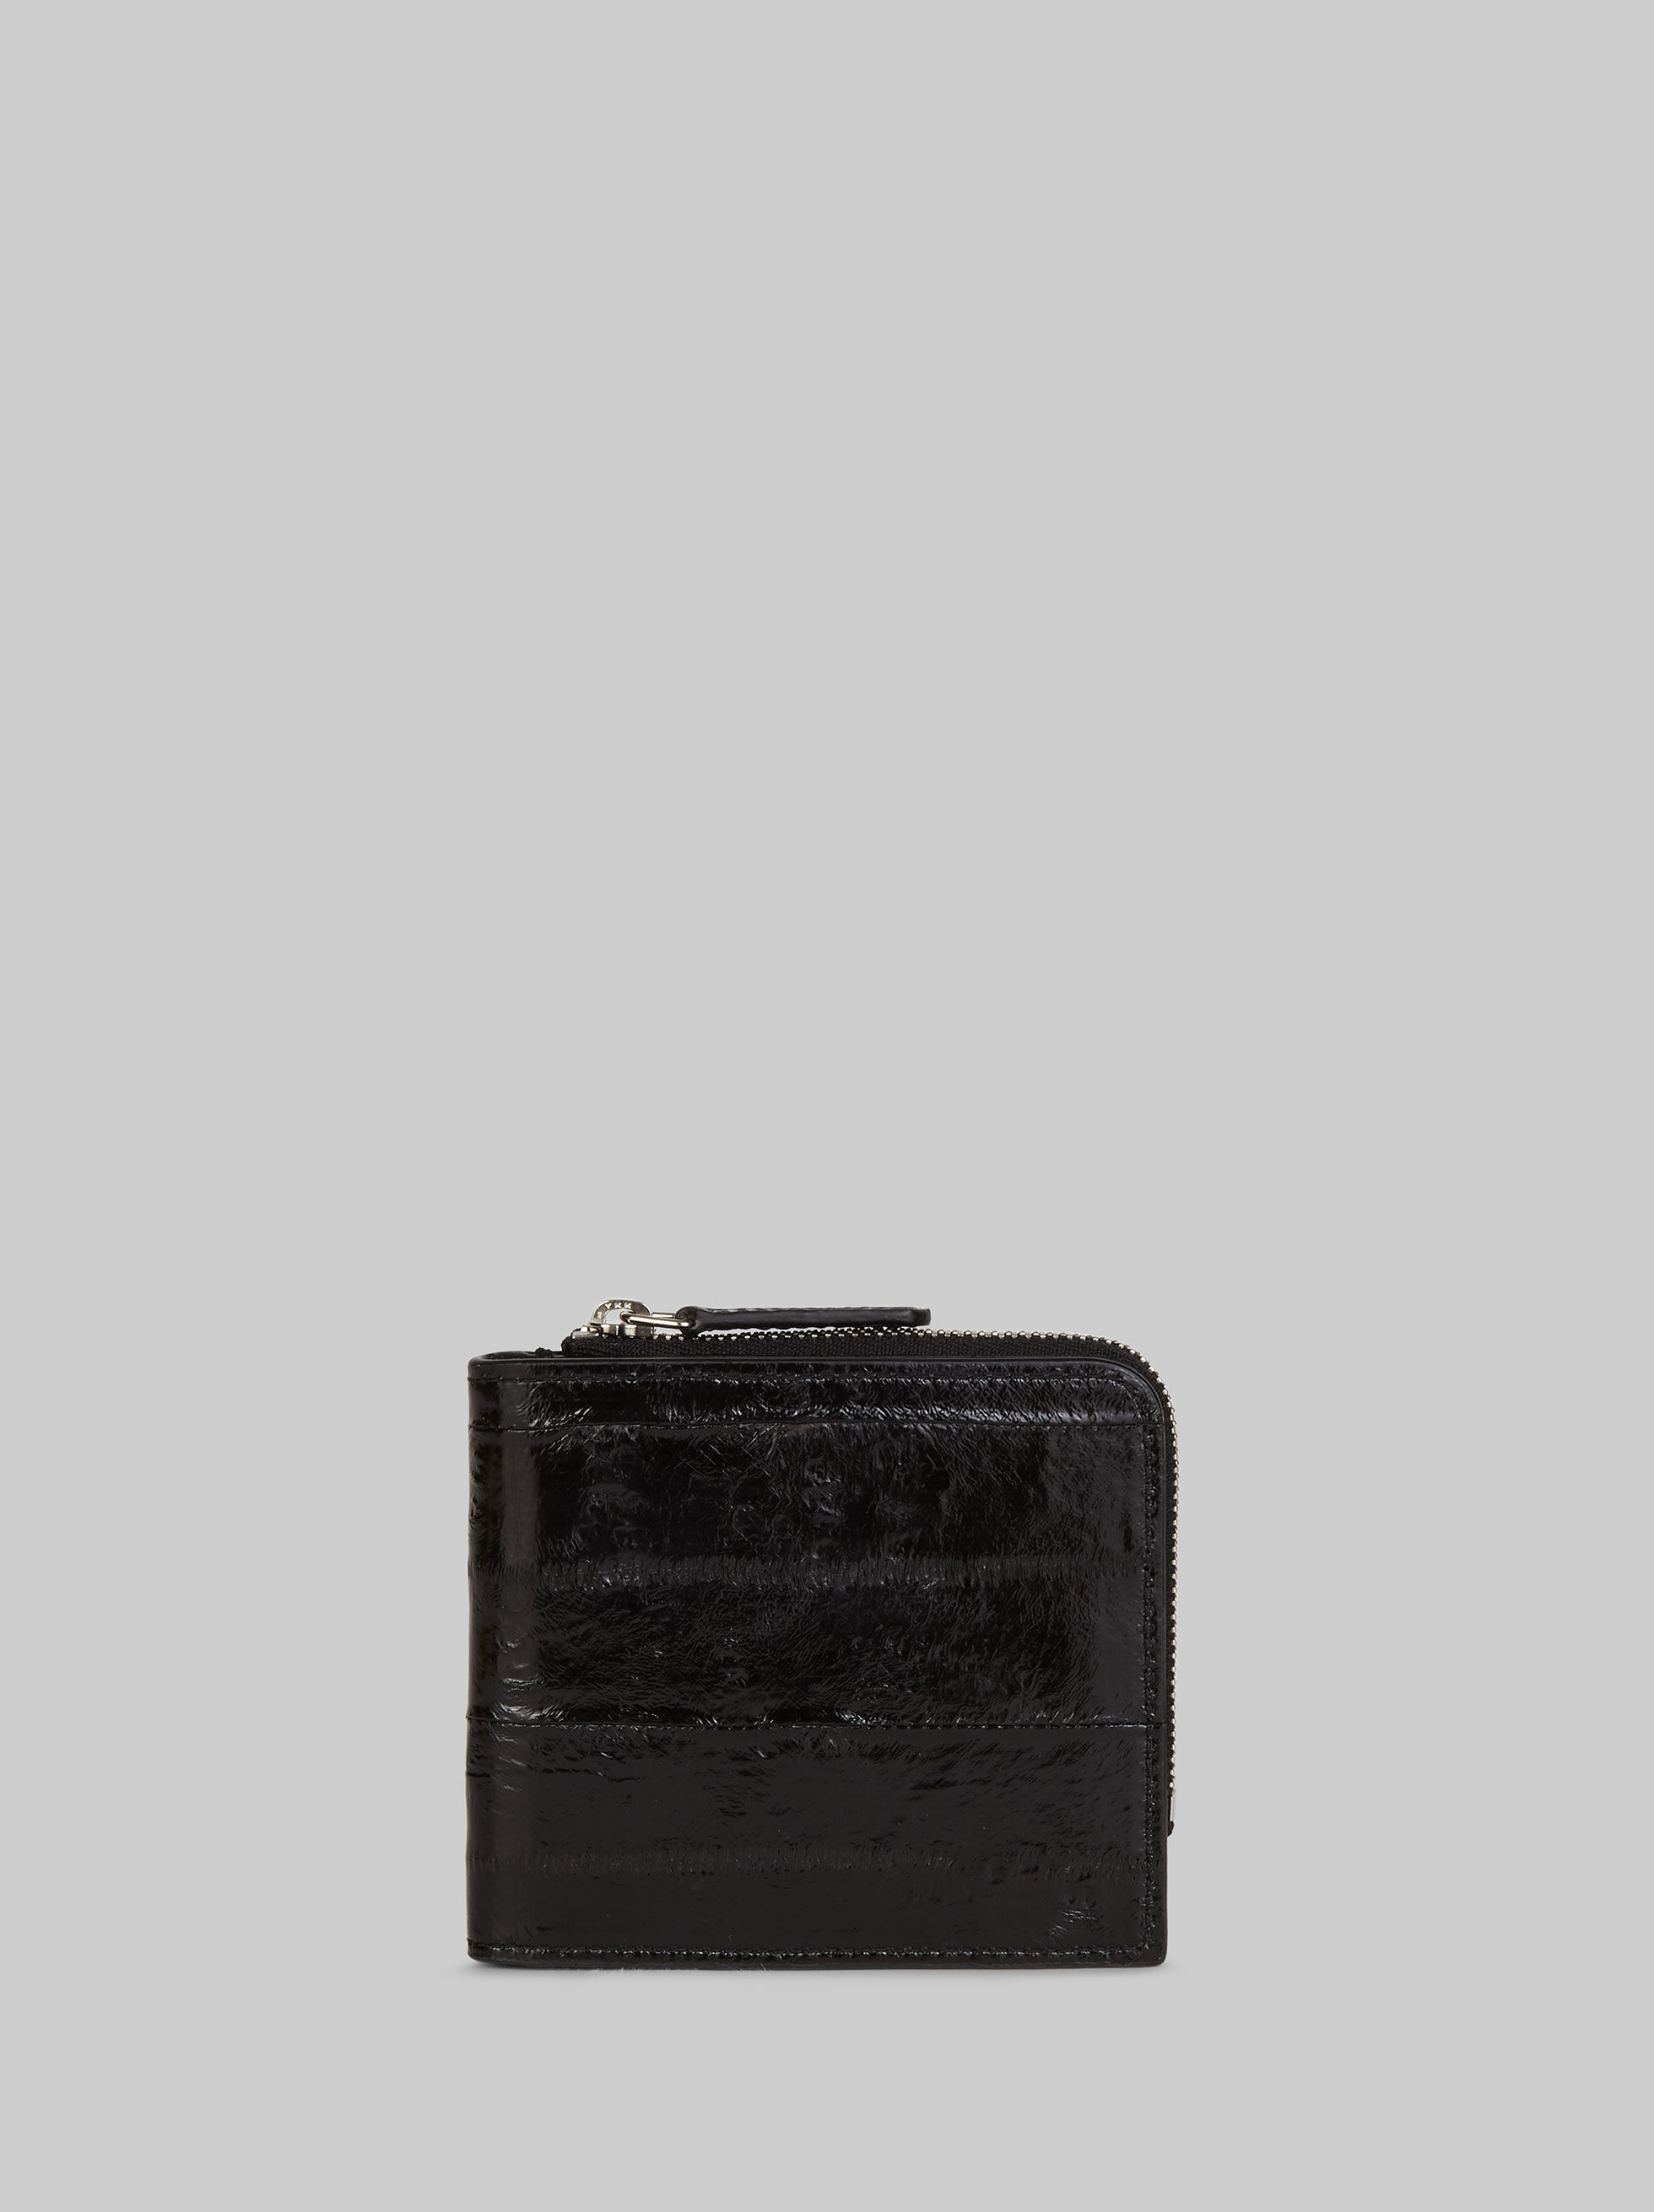 ZIPPED LEATHER WALLET